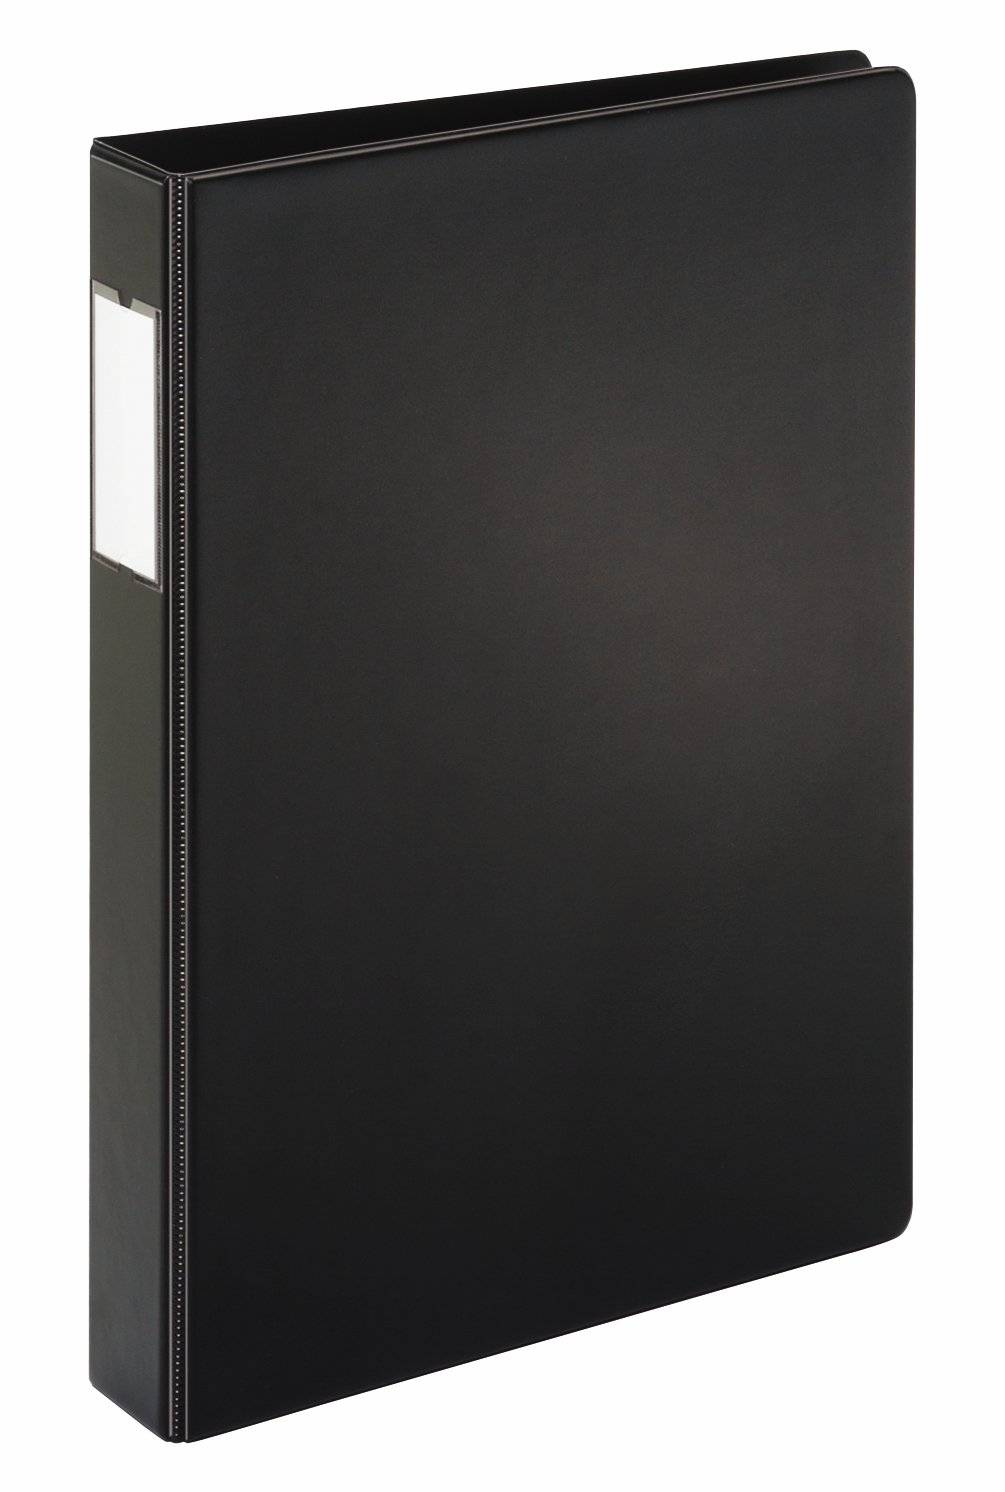 Cardinal 14232 Legal Slant D Ring Binder, 1'' Cap, 14 x 8 1/2, Black